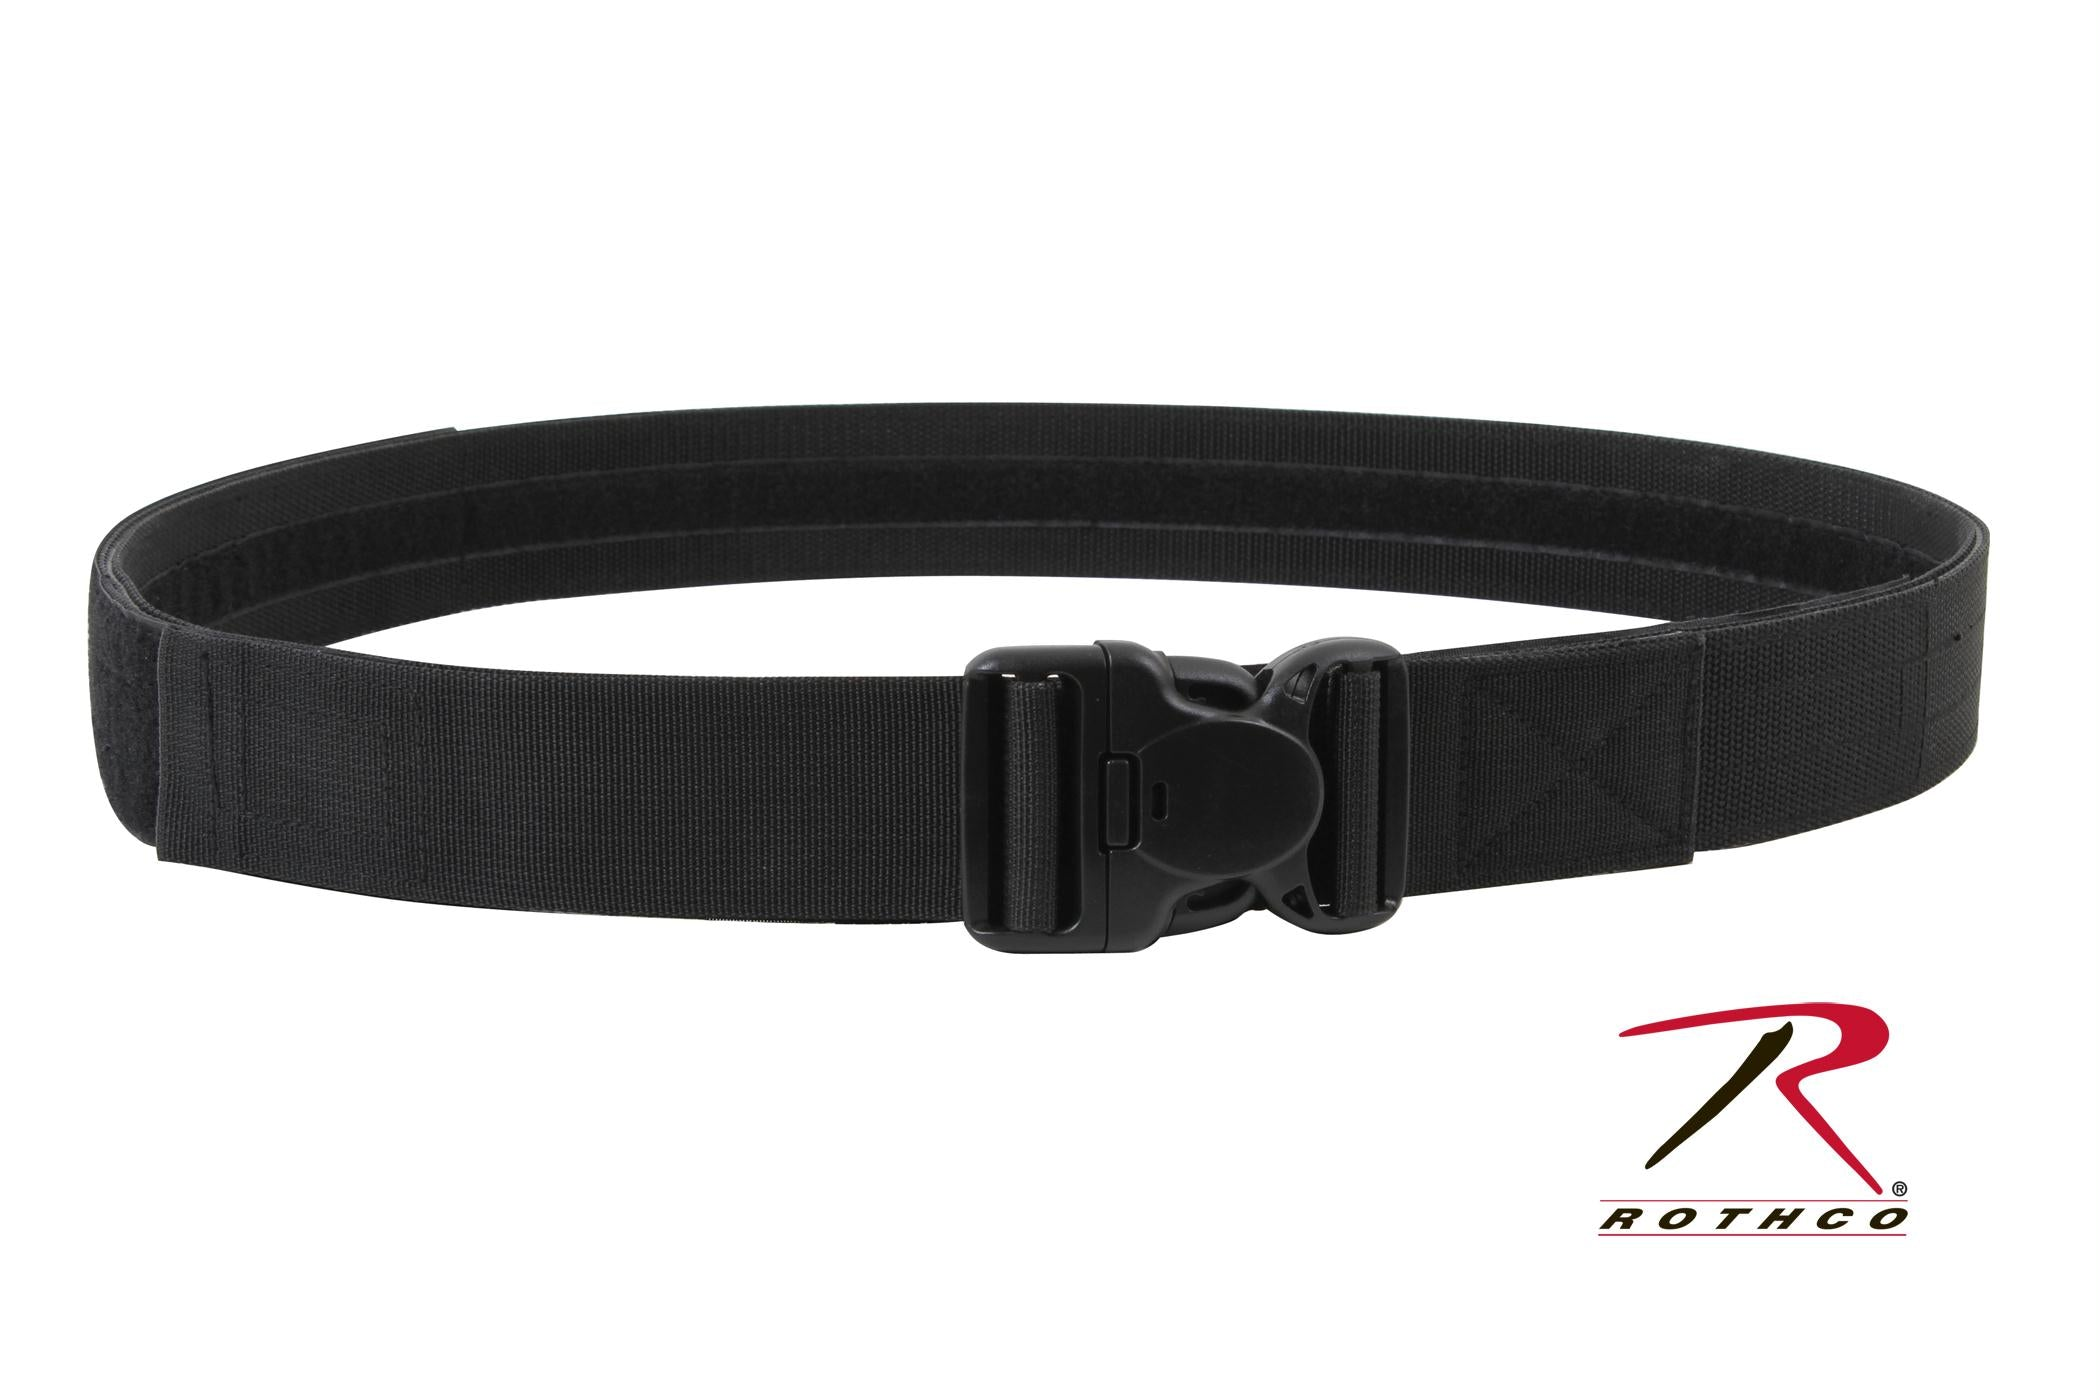 Rothco Triple Retention Tactical Duty Belt - L/XL